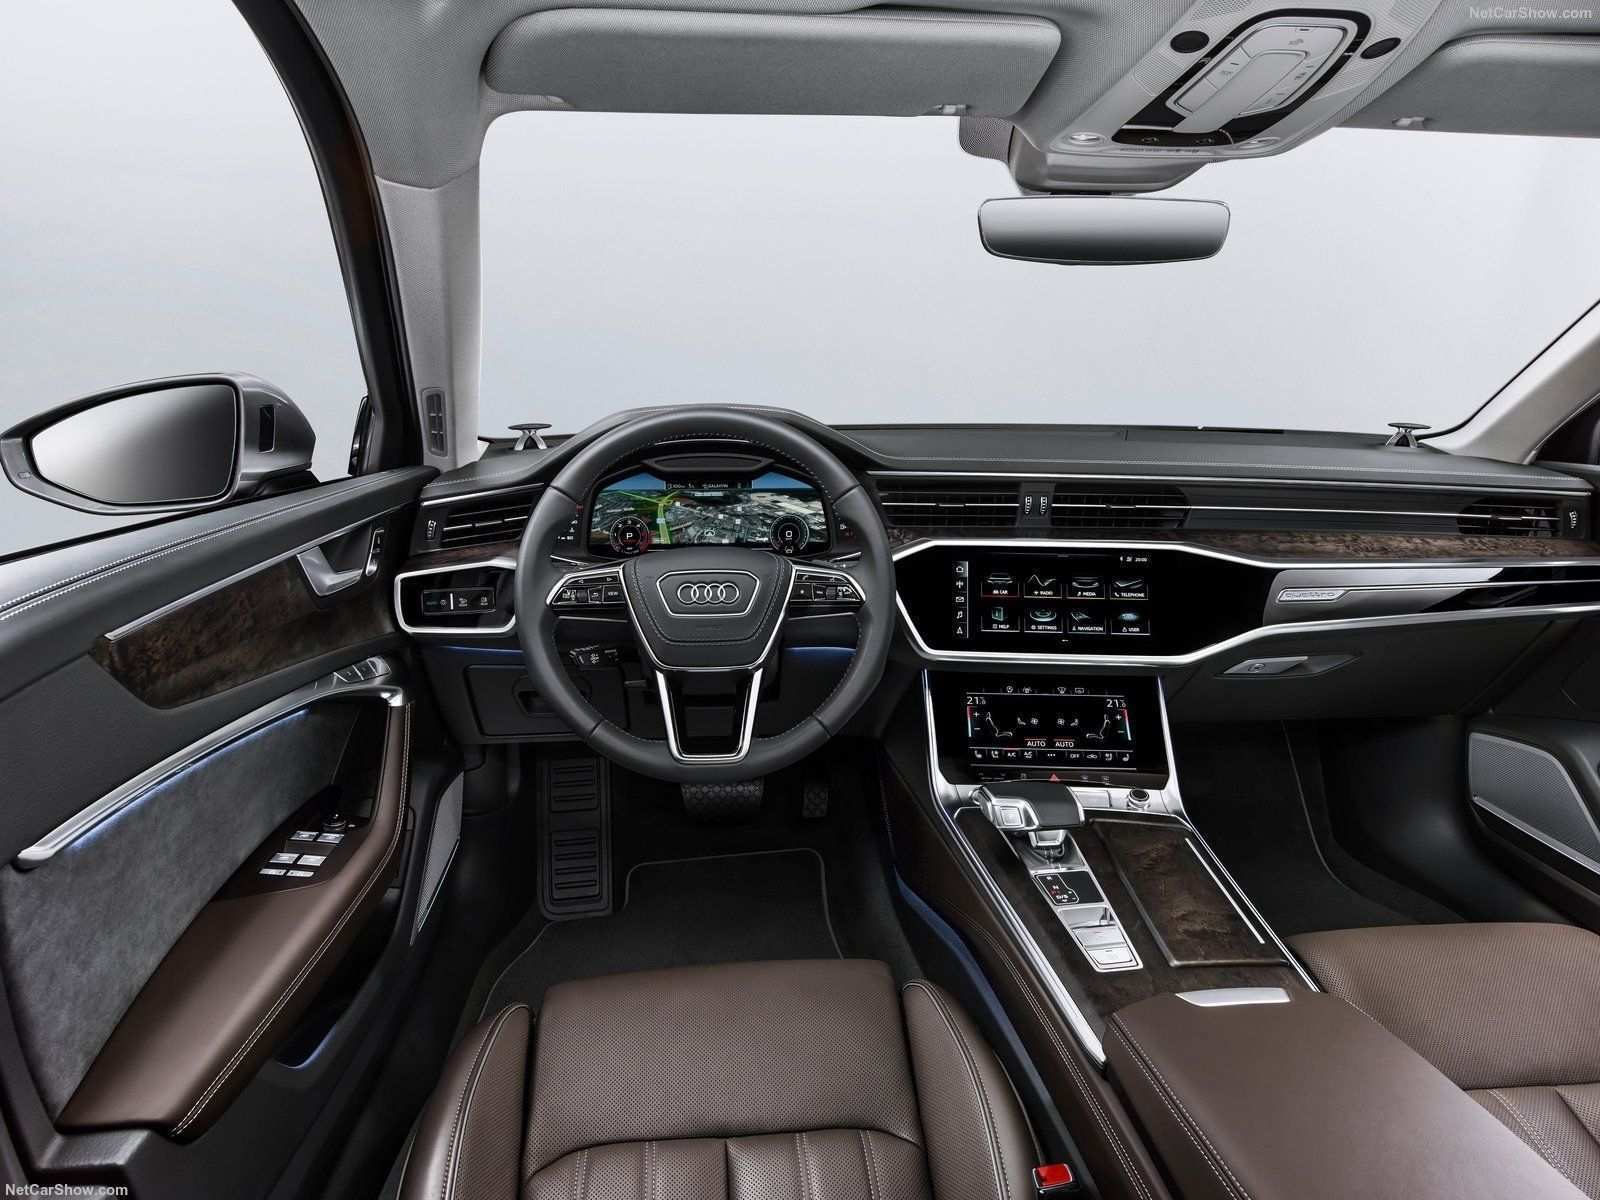 31 New Best A6 Audi 2019 Interior Rumors Price and Review by Best A6 Audi 2019 Interior Rumors